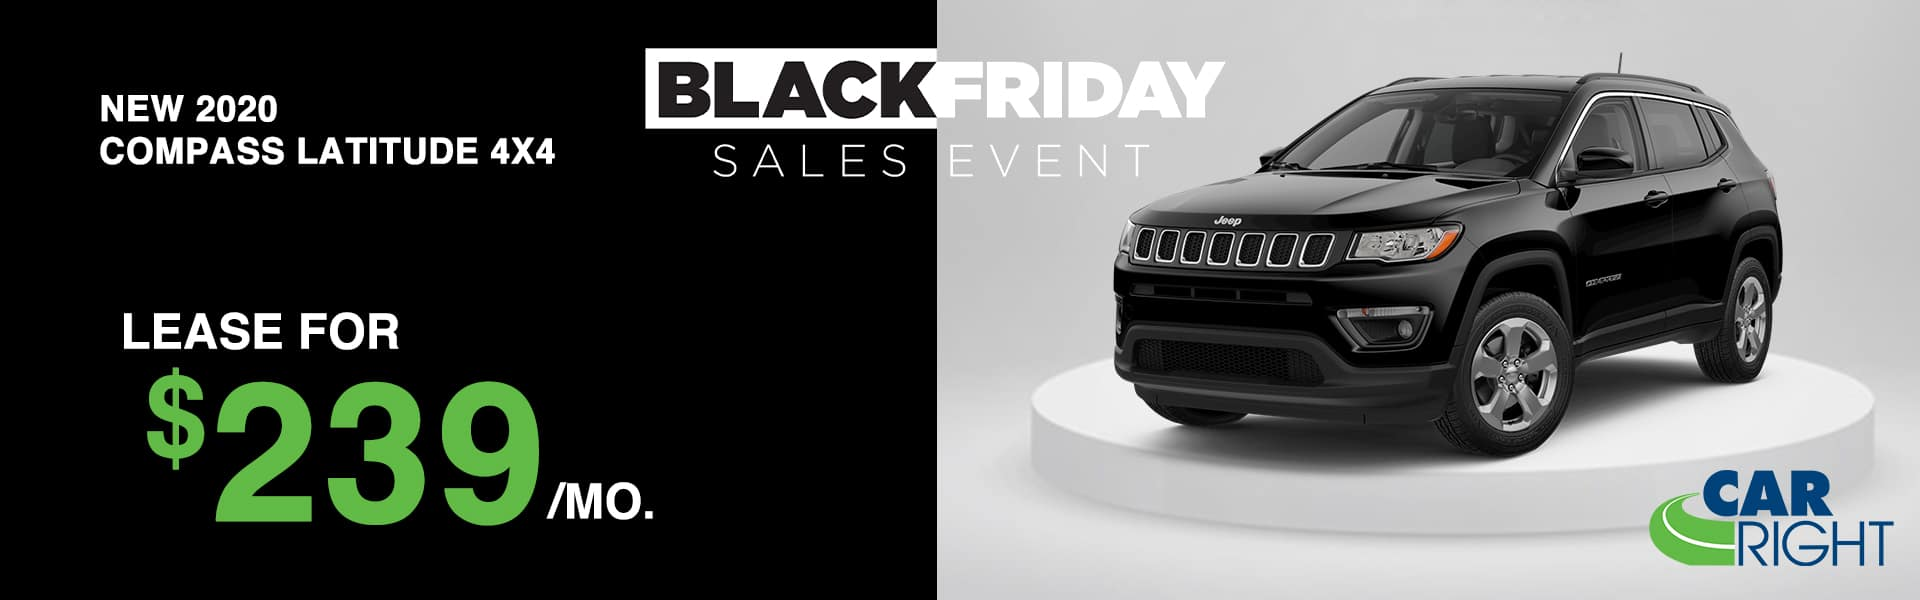 CARRIGHT-2020JEEPCOMPASS Carright moon township Pittsburgh diehl auto Chrysler dodge jeep ram Black Friday sales event lease special new vehicle special sale year end savings employee pricing plus